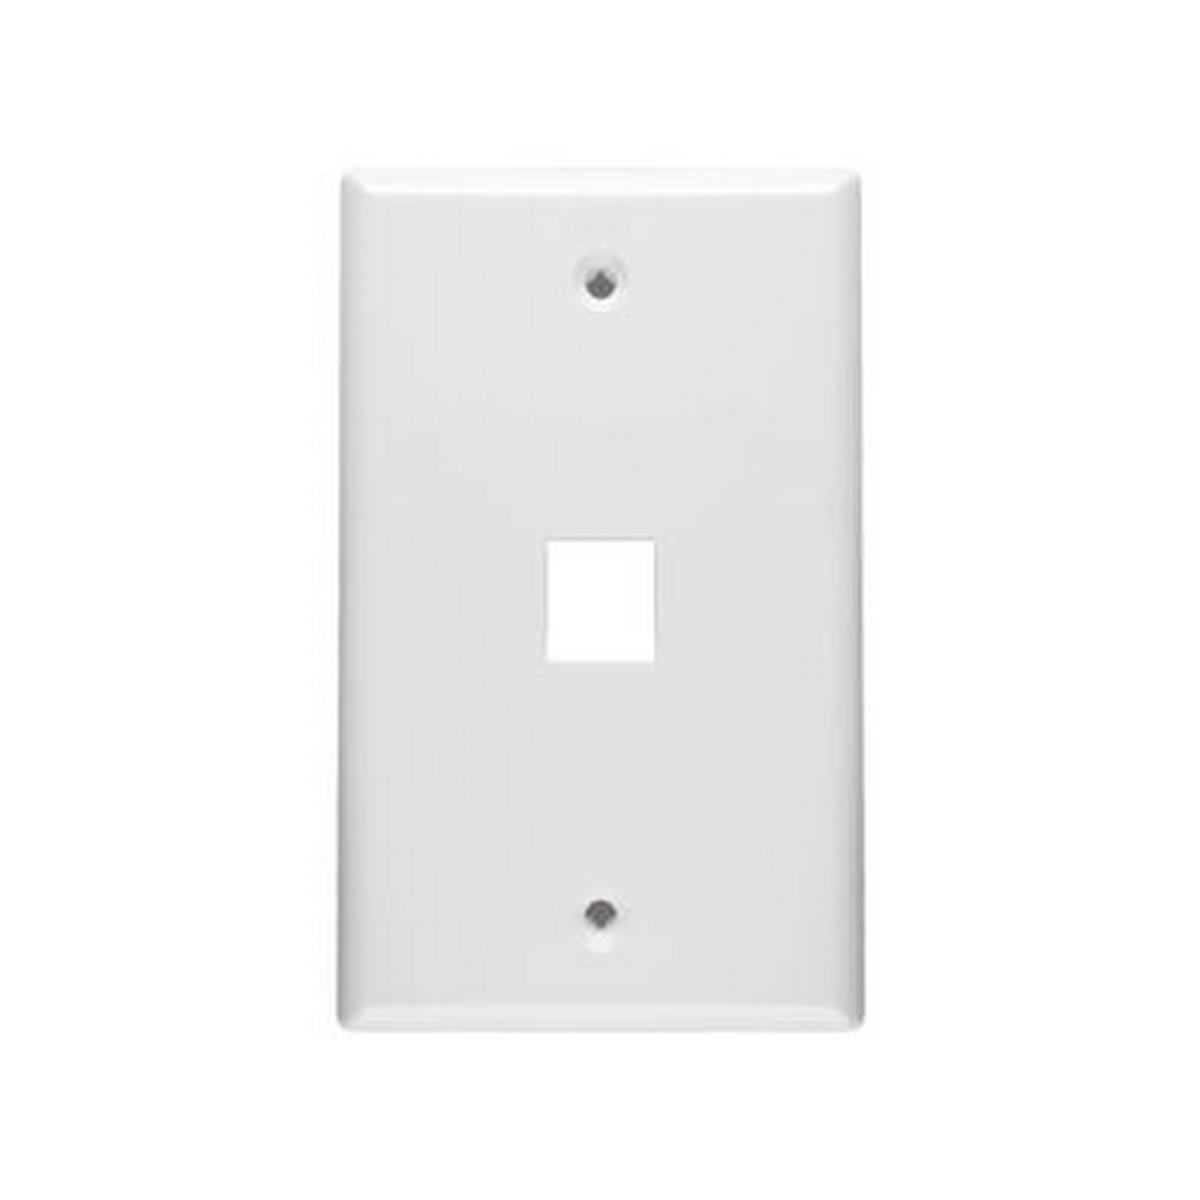 1 Port keystone 1 gang Wall plate White